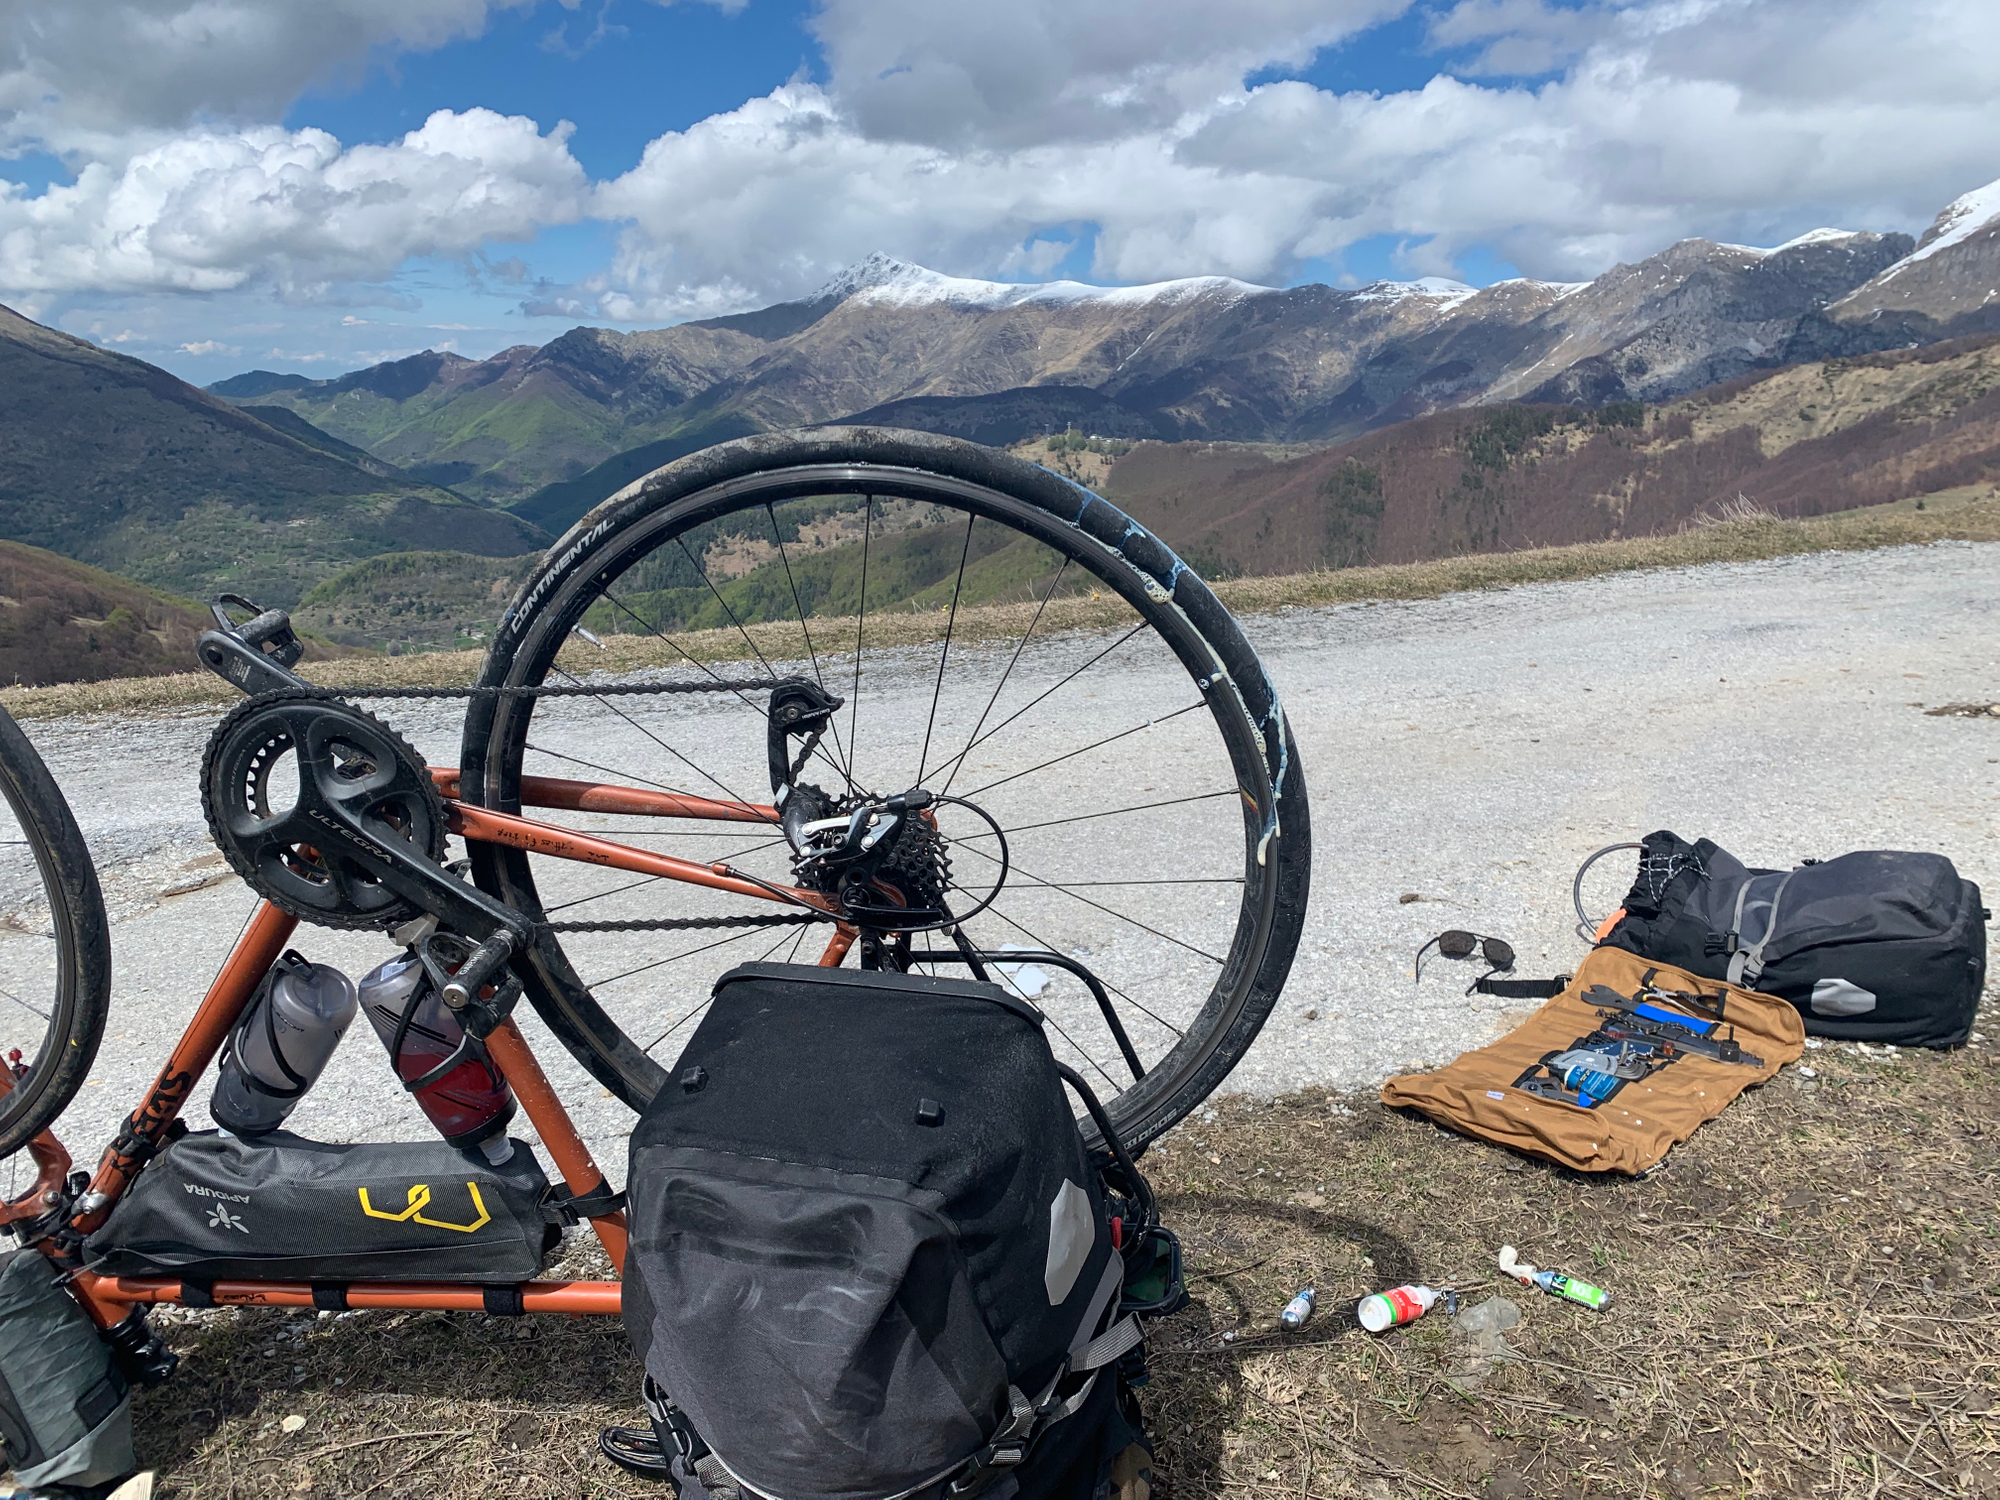 Dealing with tubeless tyre failure, replacing sealant and reseating a tyre, just after crossing from France to Italy still up in very nippy mountains.